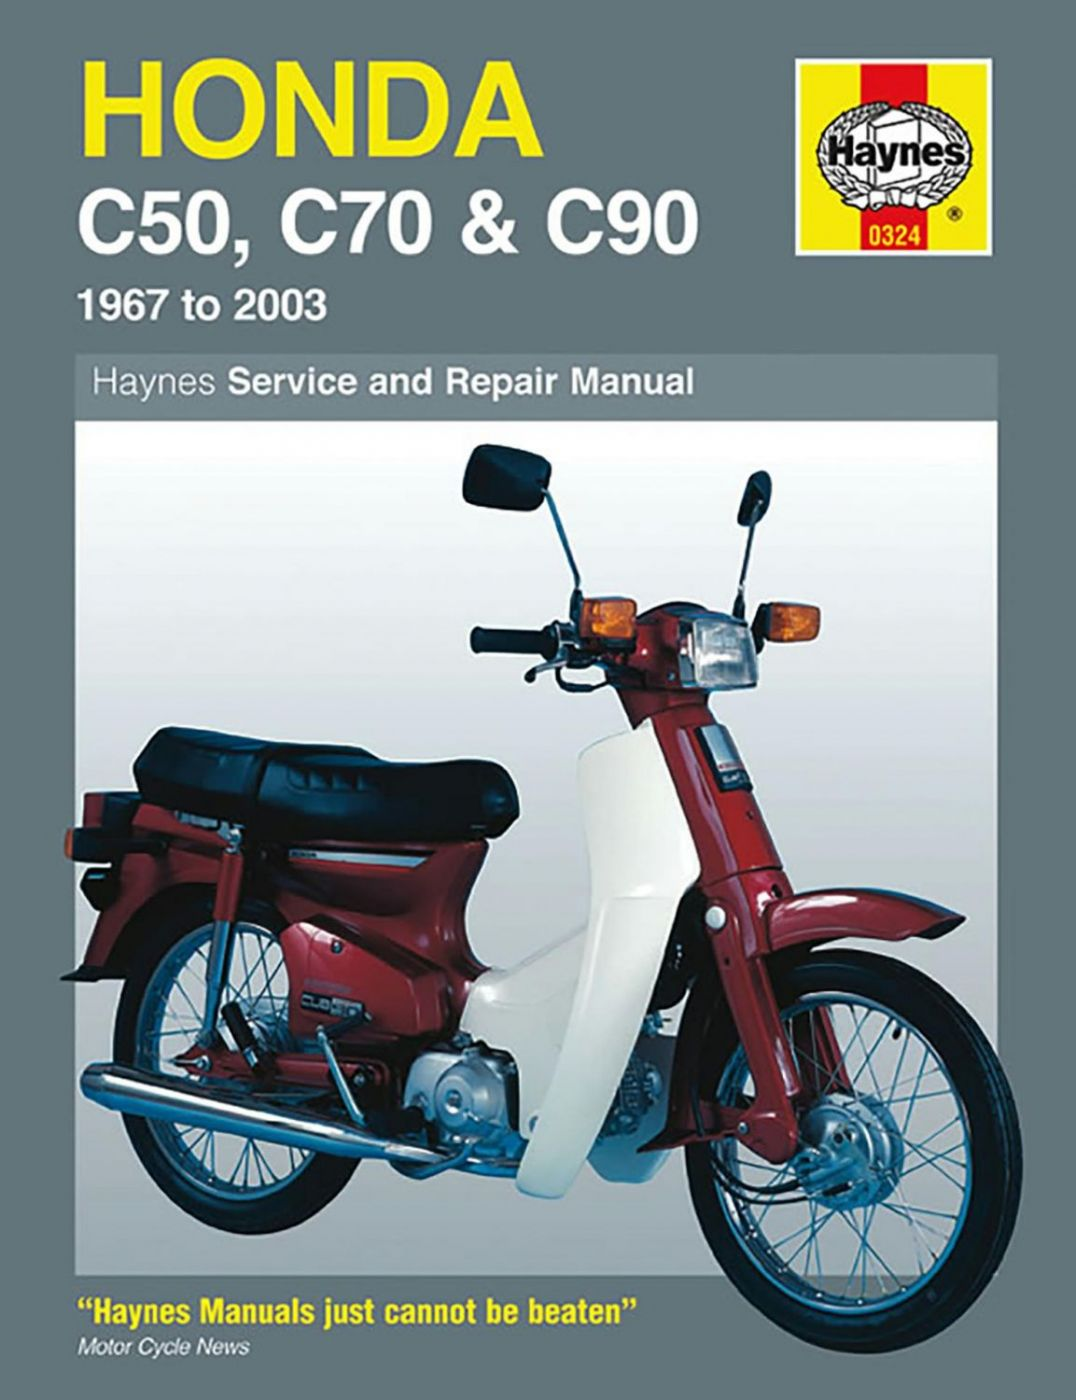 Haynes Manuals - 680324Y image